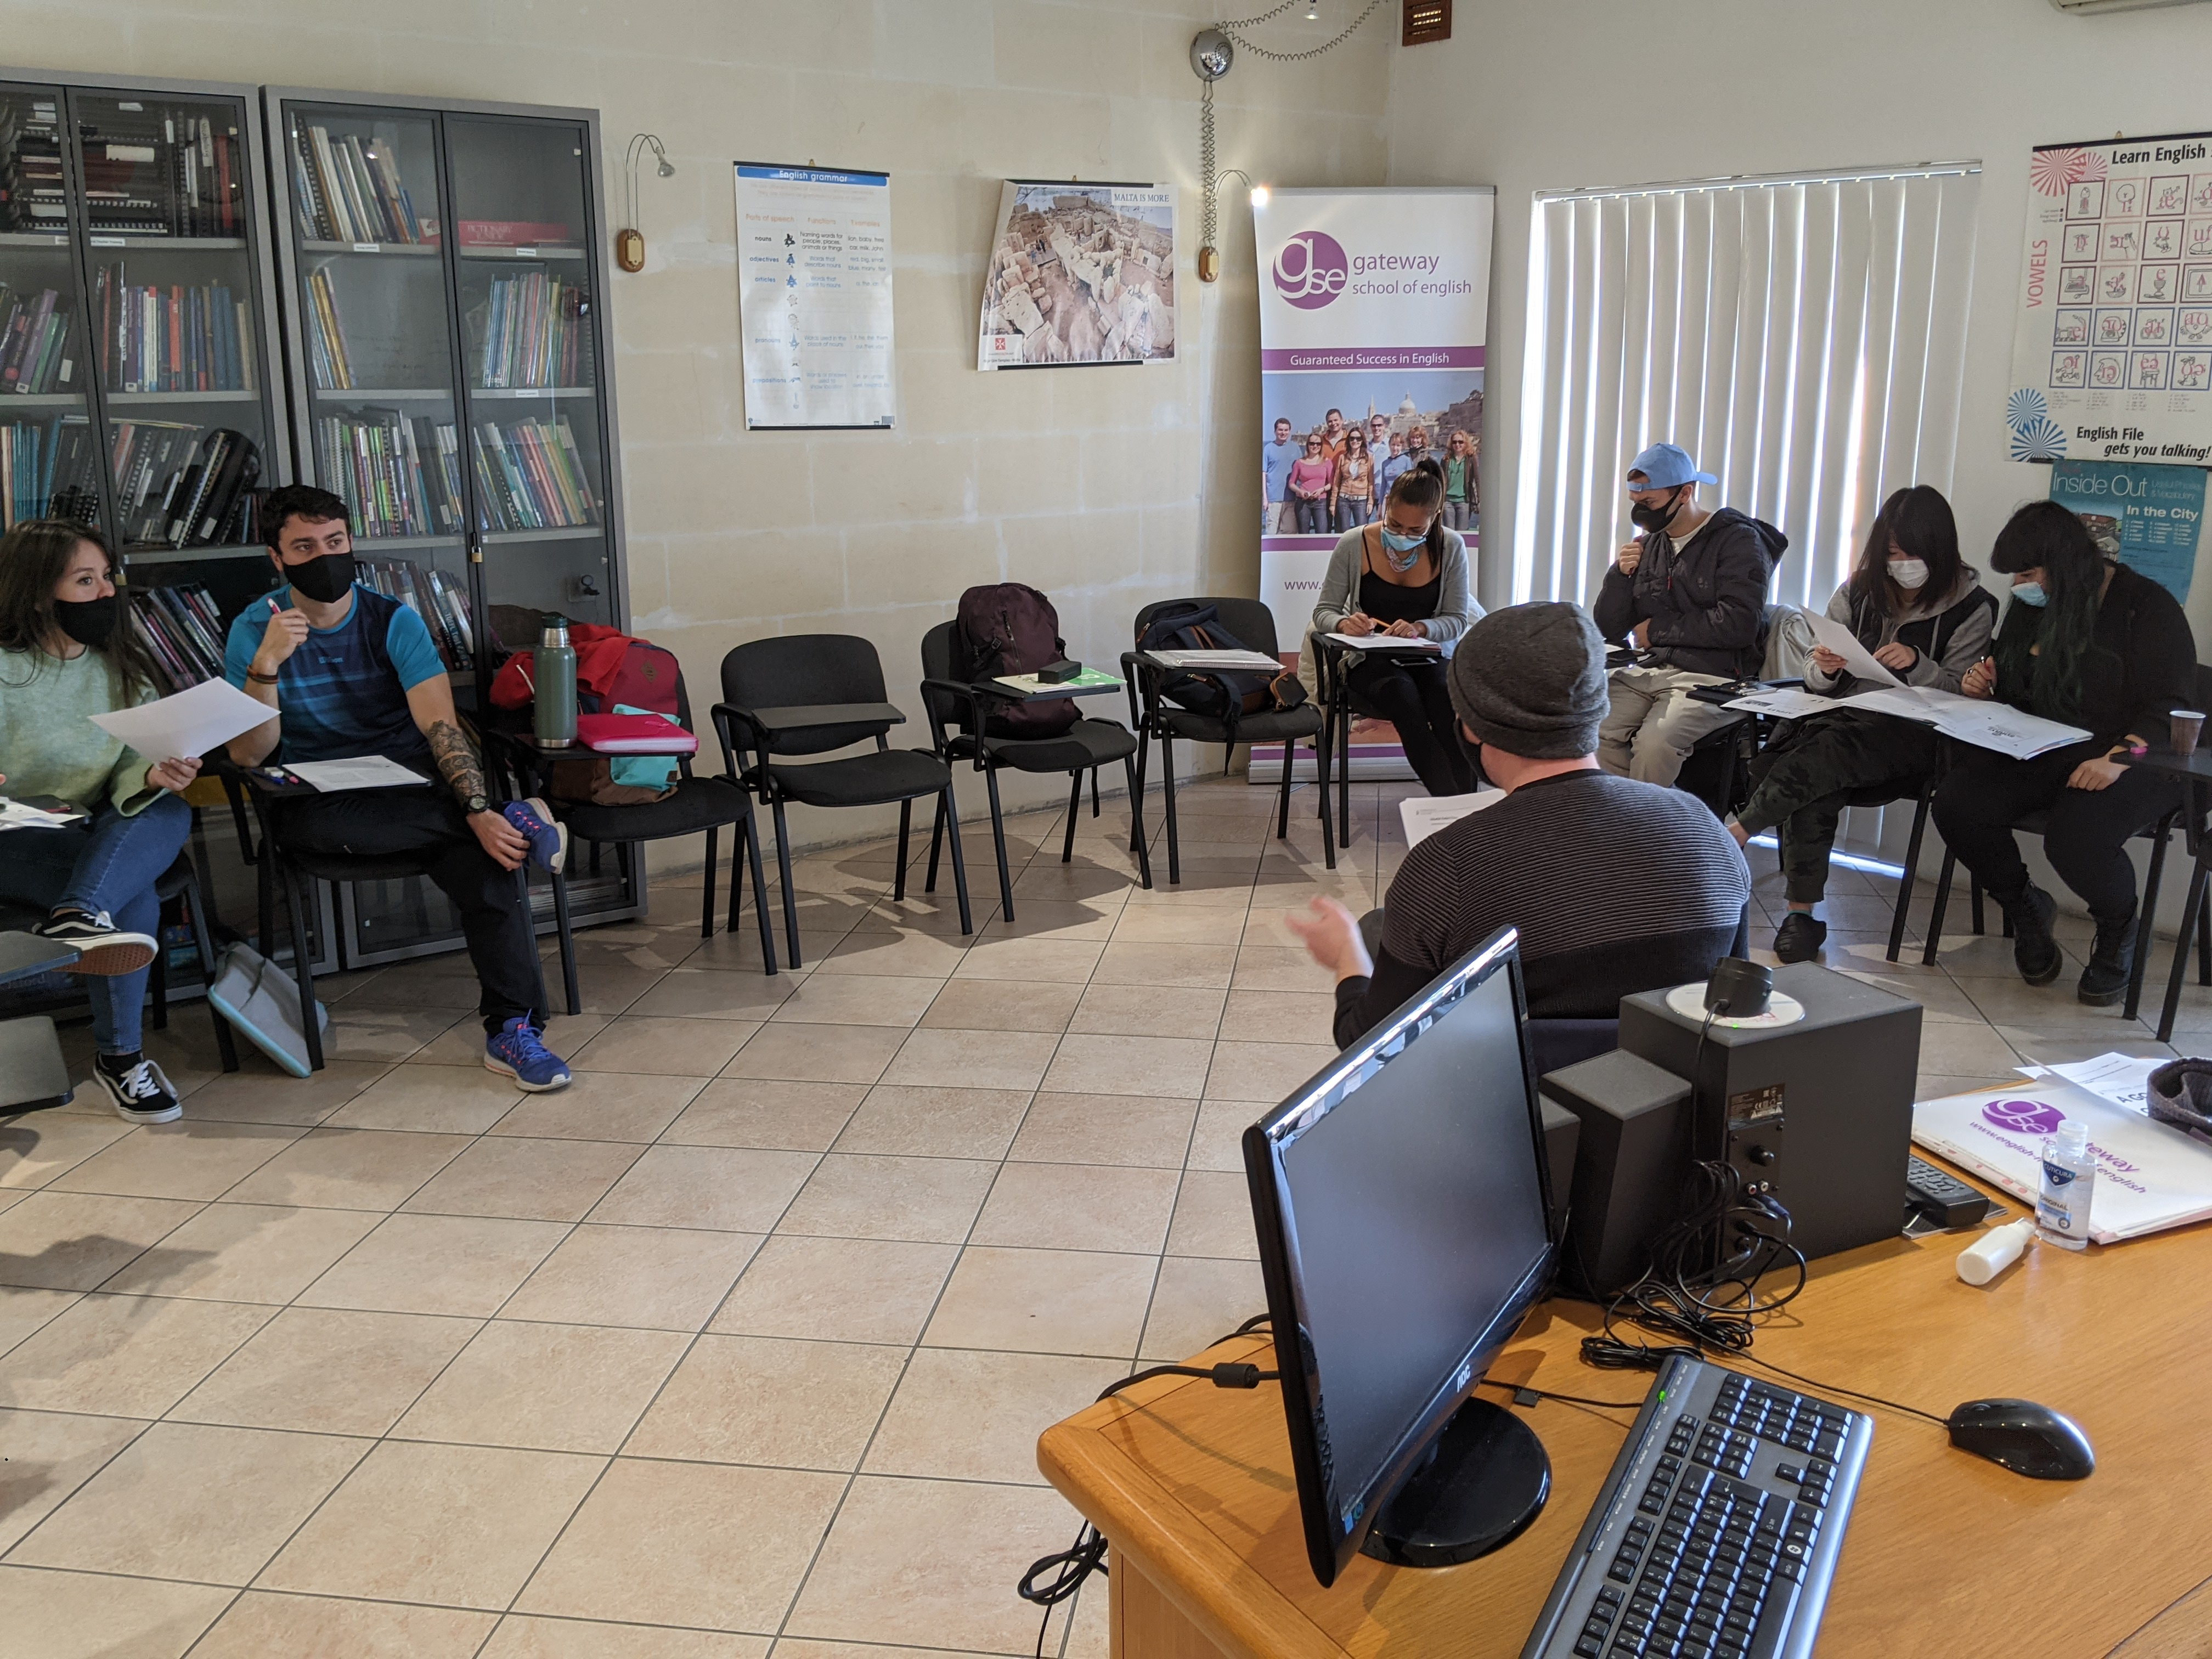 English courses in Malta with Gateway School of English GSE (2)